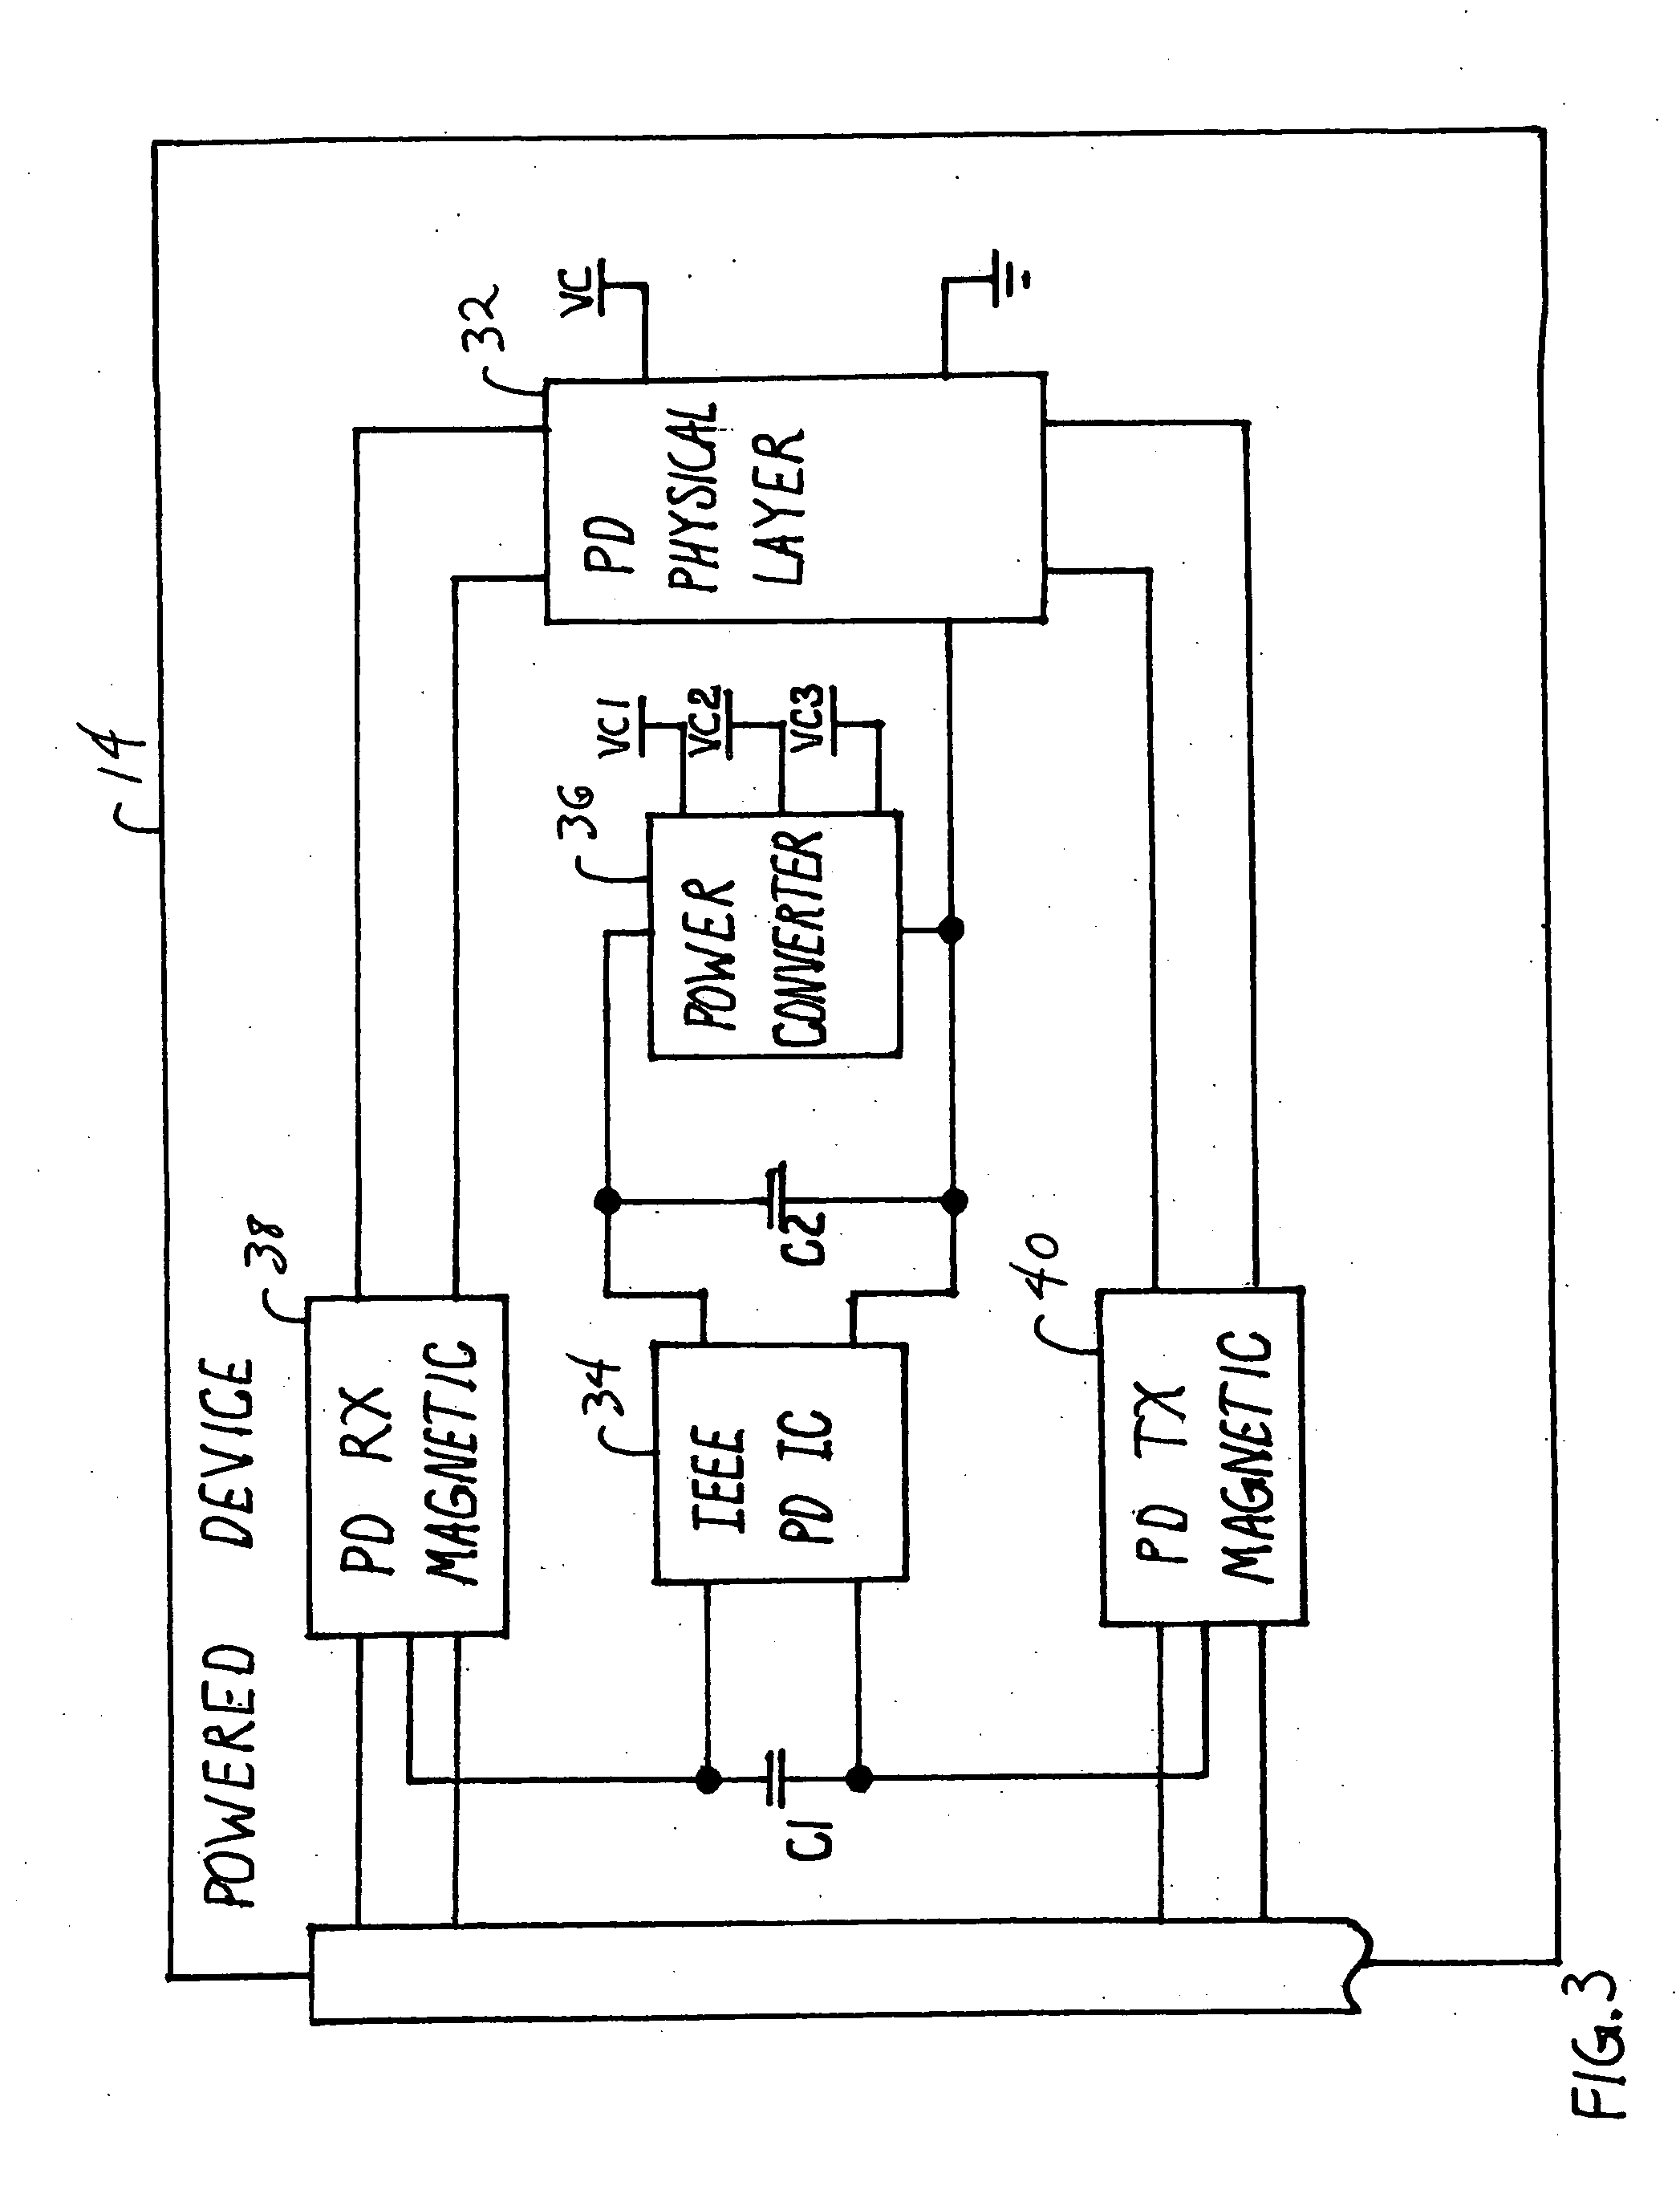 Patent Us20050141698 Enabling Cisco Legacy Power To Support Ieee Circuit Board Recycling Equipmentcircuit Electronic Drawing